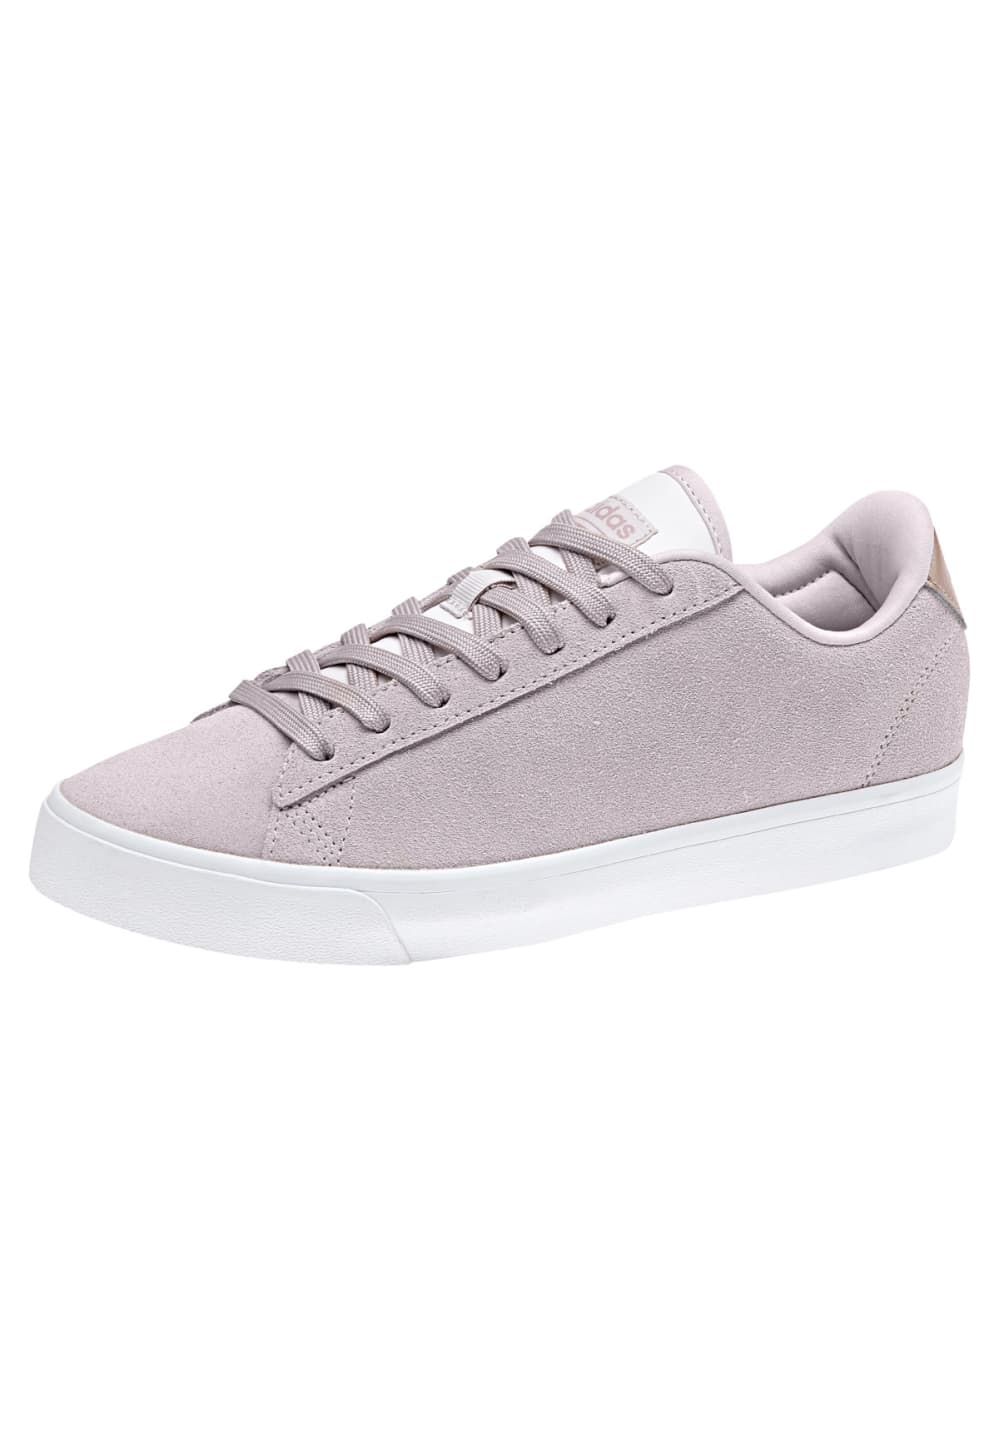 Adidas Neo Cf Daily Qt Cl Grey Sneakers